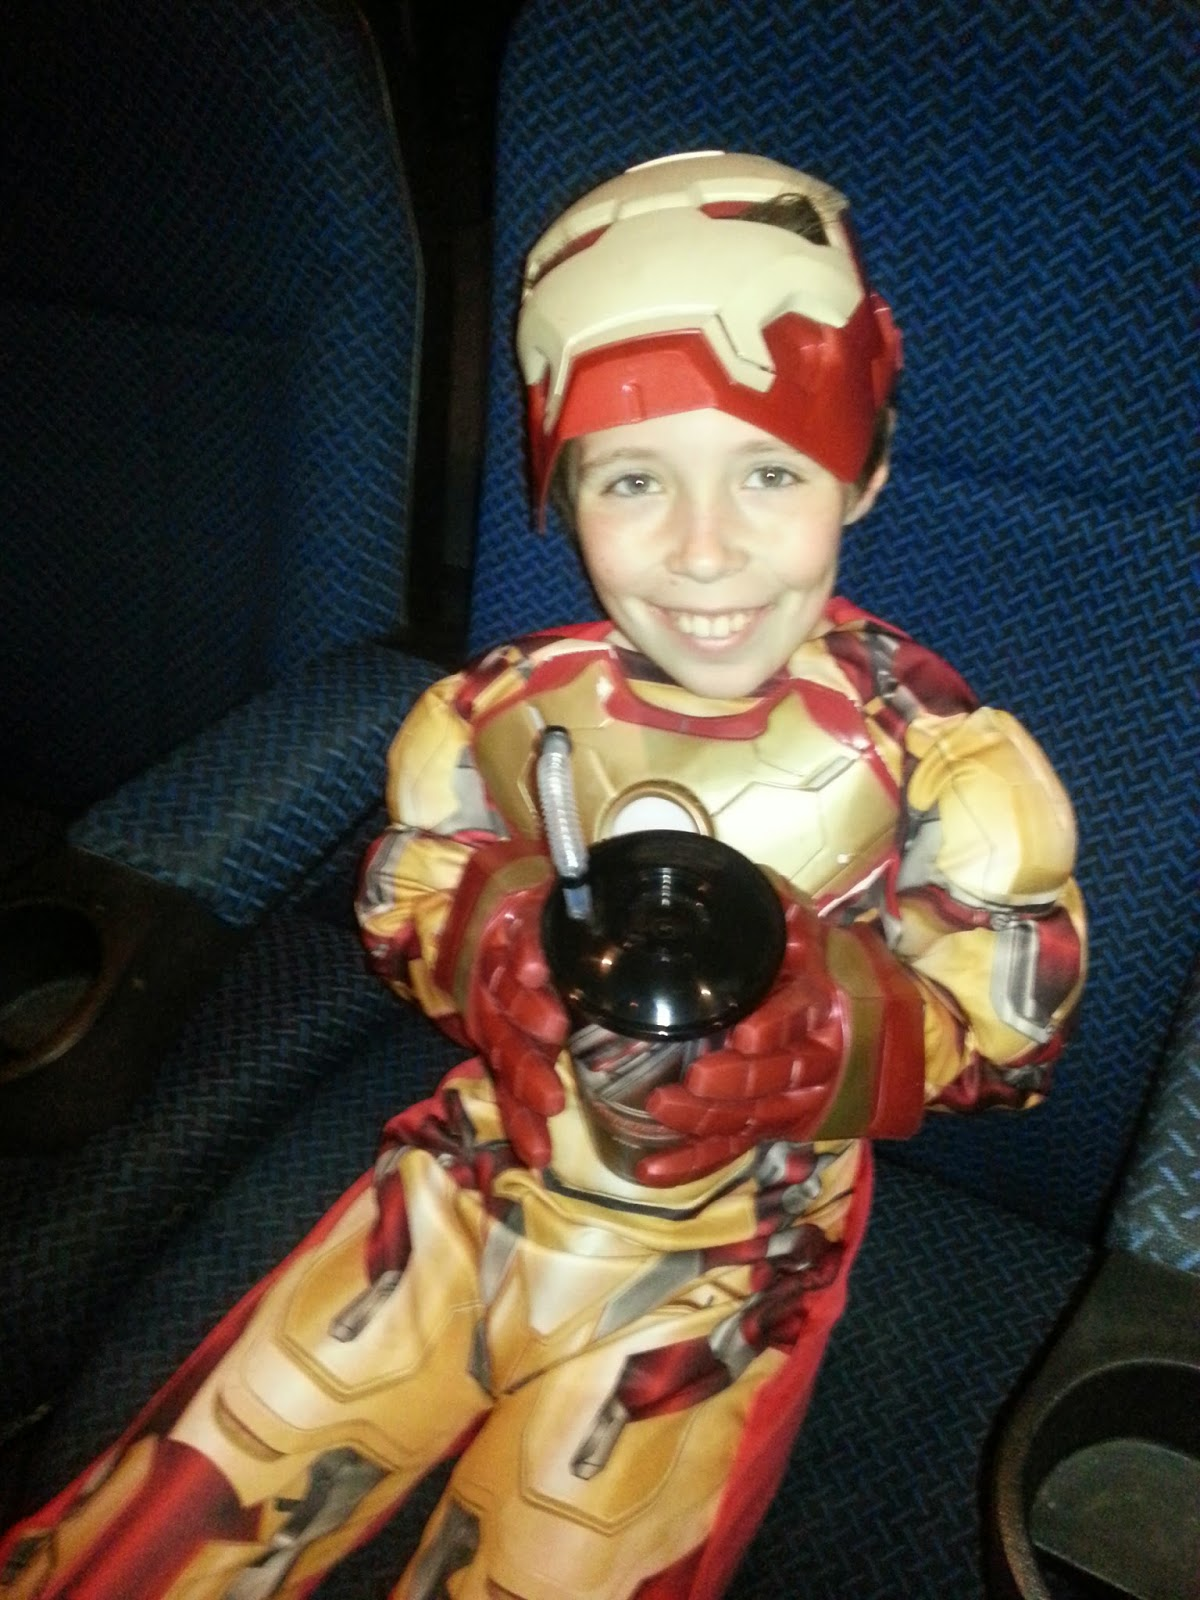 Boy in Iron Man Costume